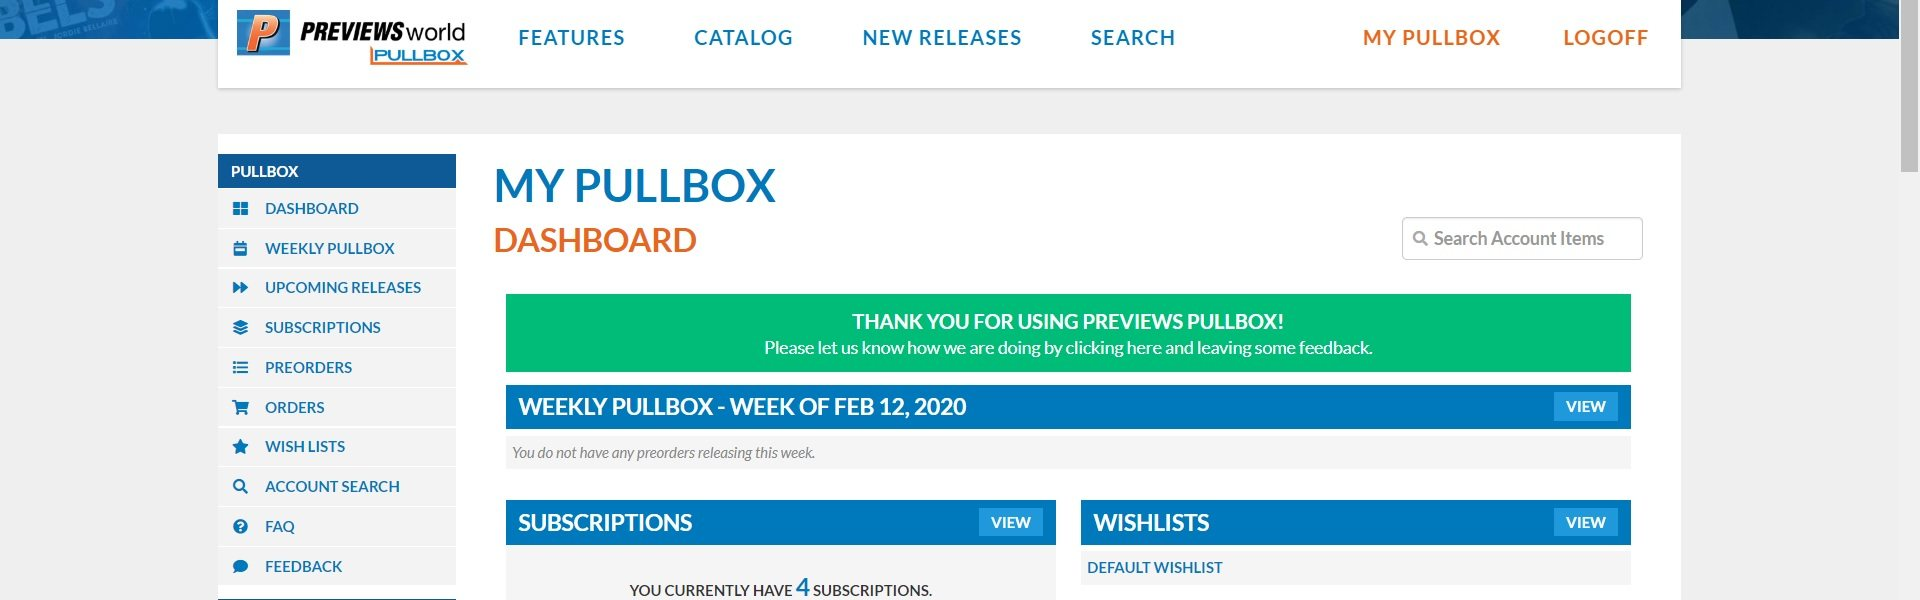 PULLBOX HAS LAUNCHED!